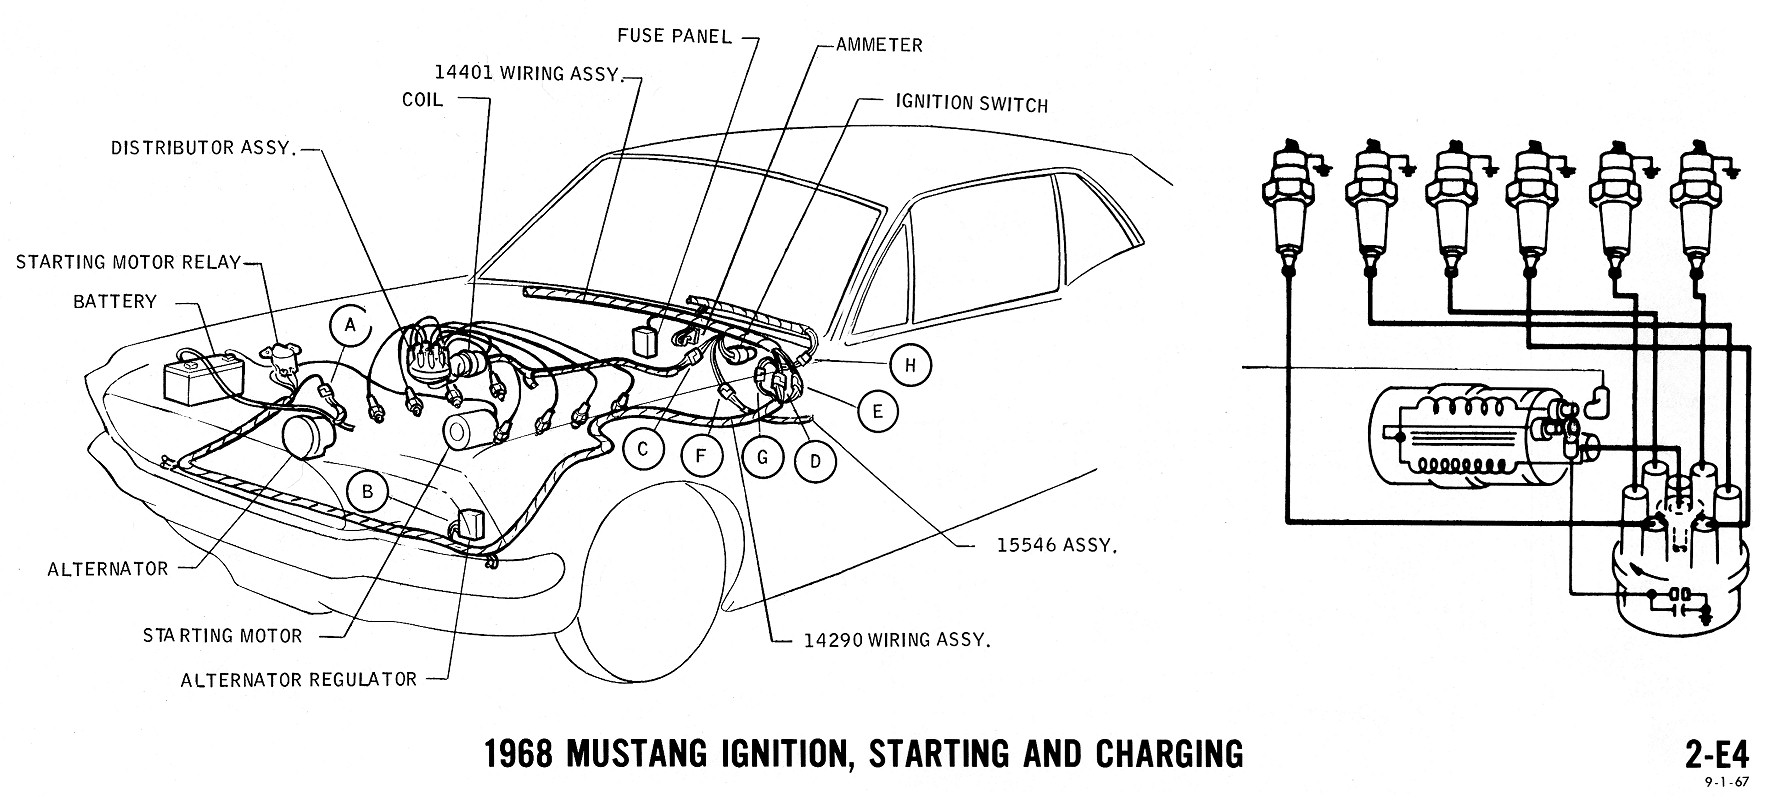 Mustang Wiring Diagram Ignition Starting Charging further Chevy Truck Wiring Diagram Ignition Switch Motorcycle Arresting C further D Falcon Wiring Help Needed Ford Ranchero Diagram moreover Wiper as well Leviton Double Switch Wiring Diagram Lovely Single Pole Dimmer In. on 1964 mustang alternator wiring diagrams